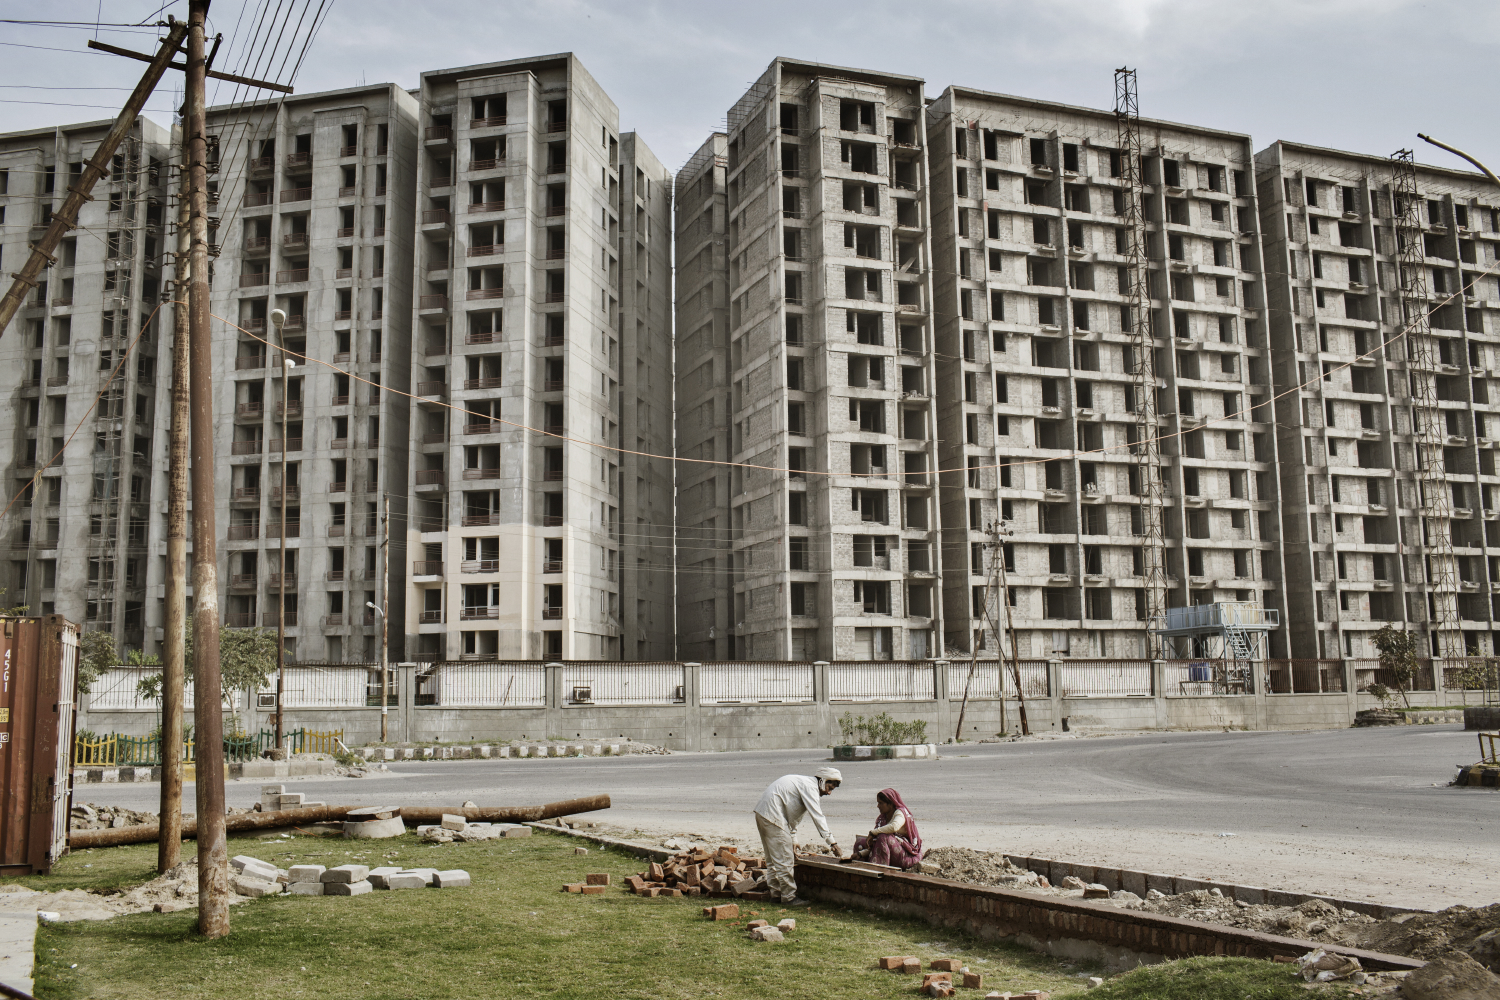 A view of a construction site in Greater Noida, Uttar Pradesh, India.